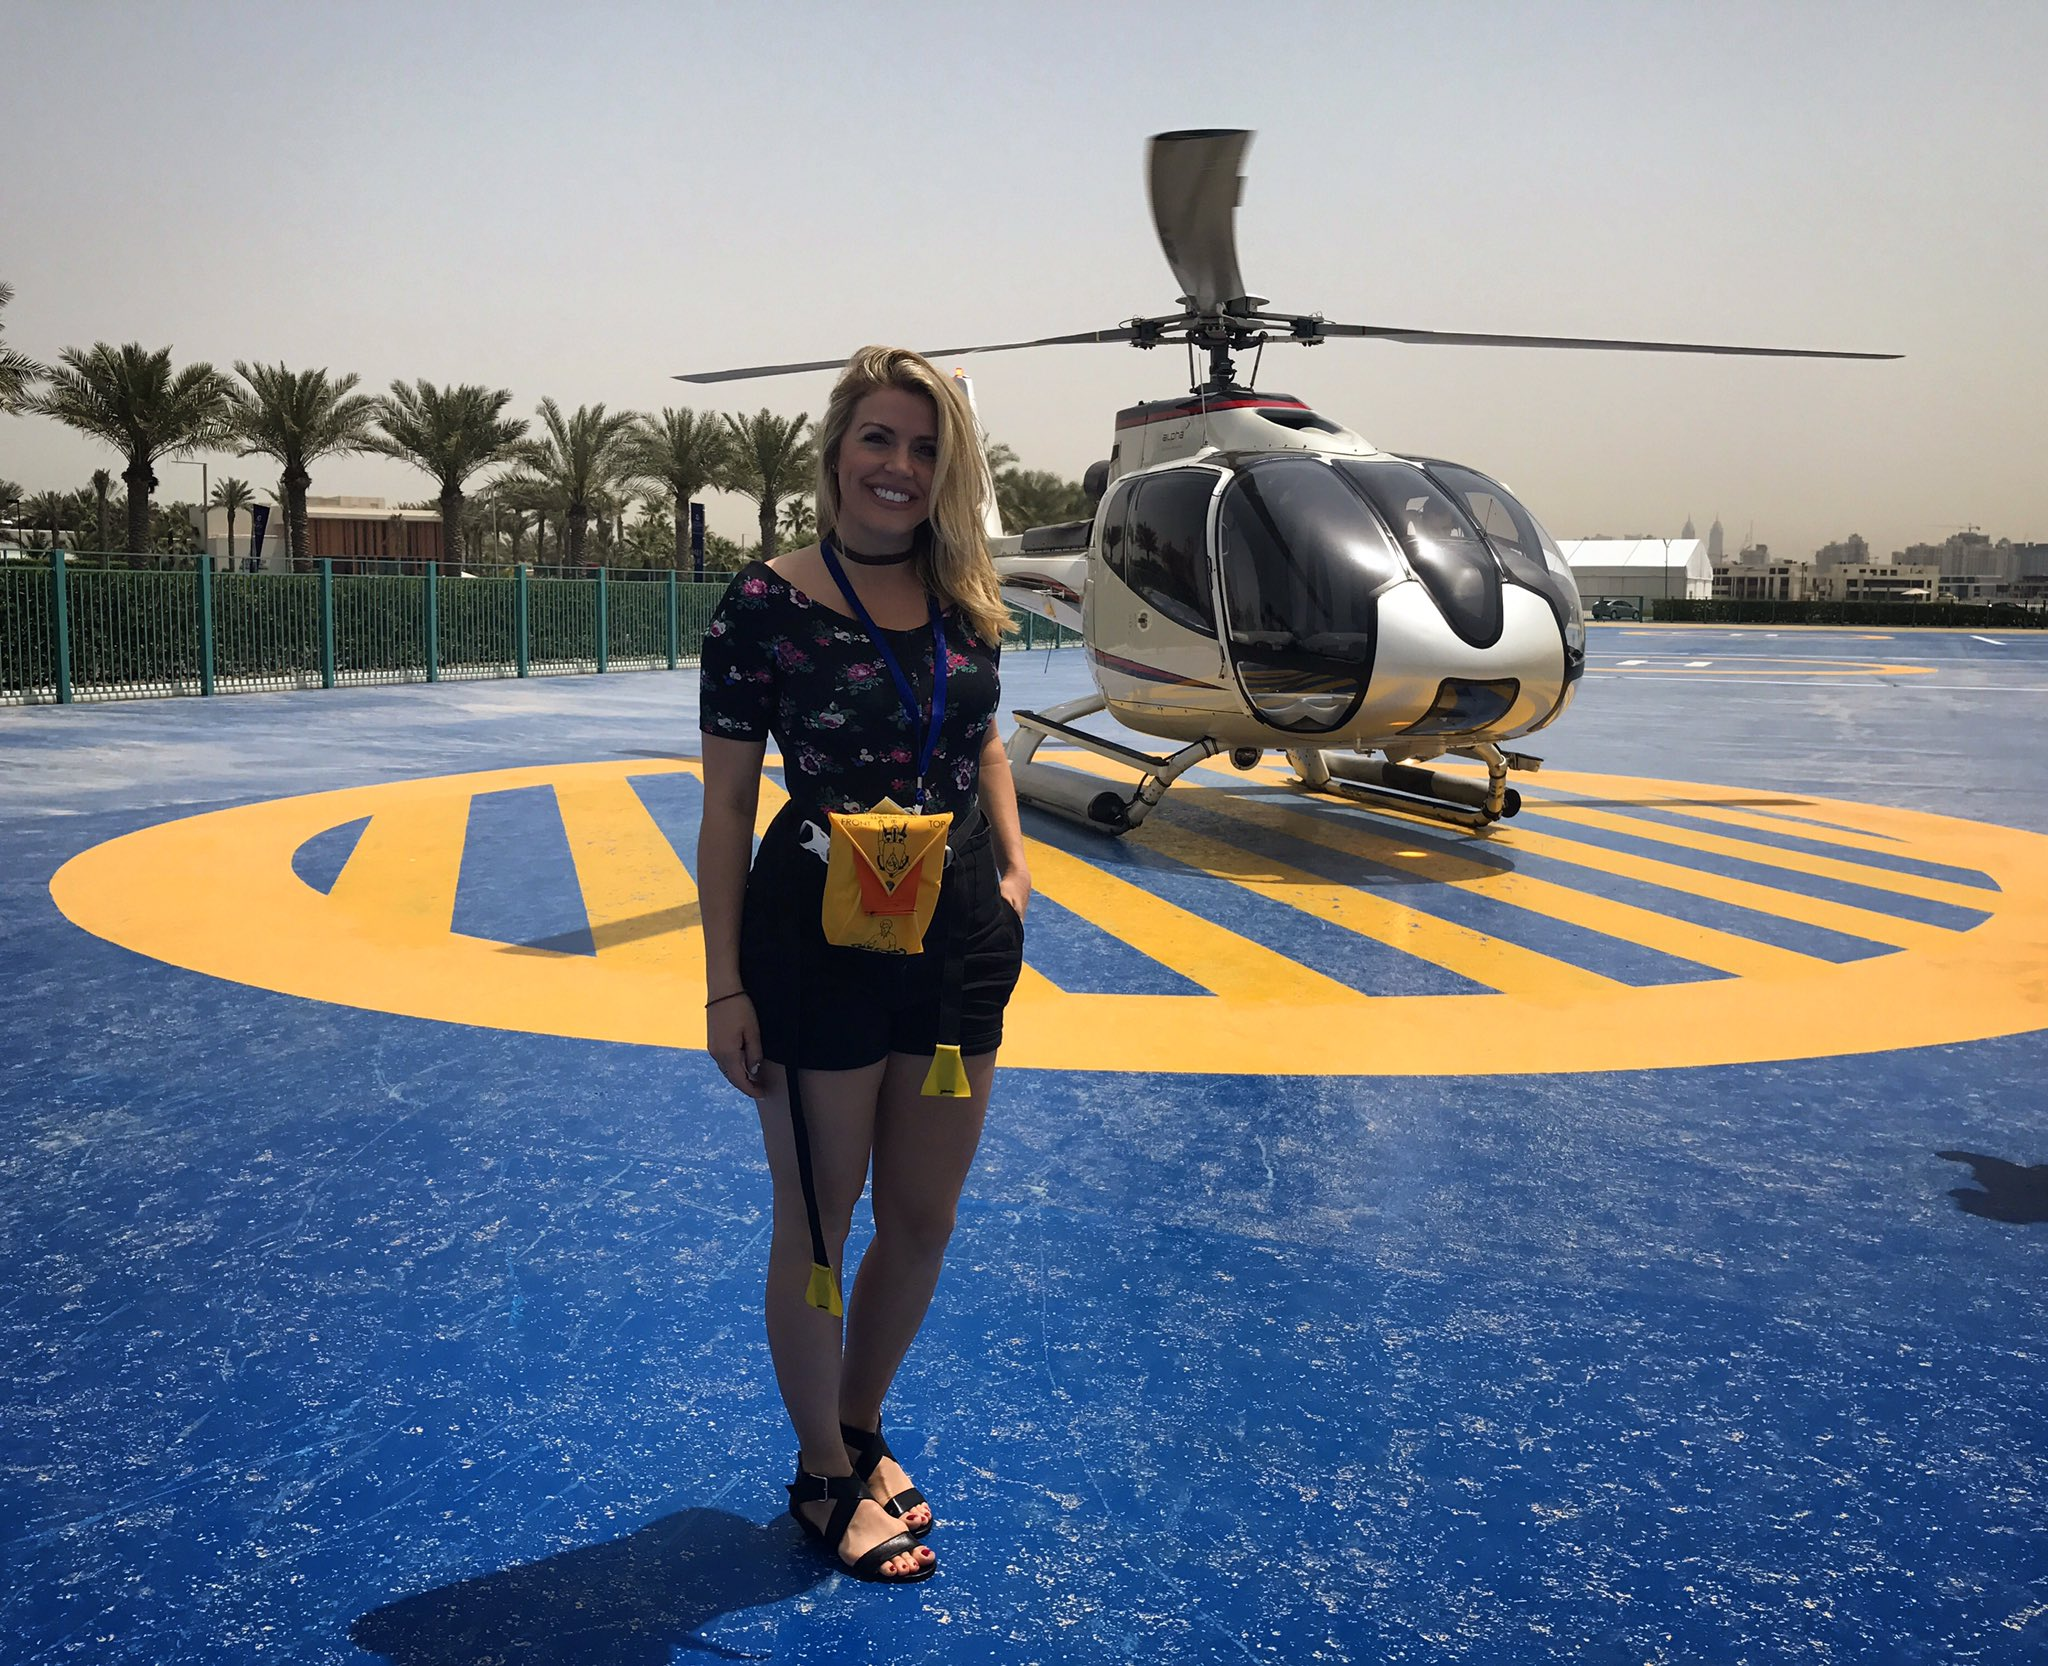 helicopter dubai with 848866031913373696 on 19282 Helicopter Crashes Taking Off From Atlantis Dubai in addition Indonesias Pt Palindo Marine Showcases Mini Submarine Design together with Overview Atlantis The Palm Dubai Review as well Dullesinternationalairportunitedwidebodyhangar also Aerial Photography A Birds Eye View.